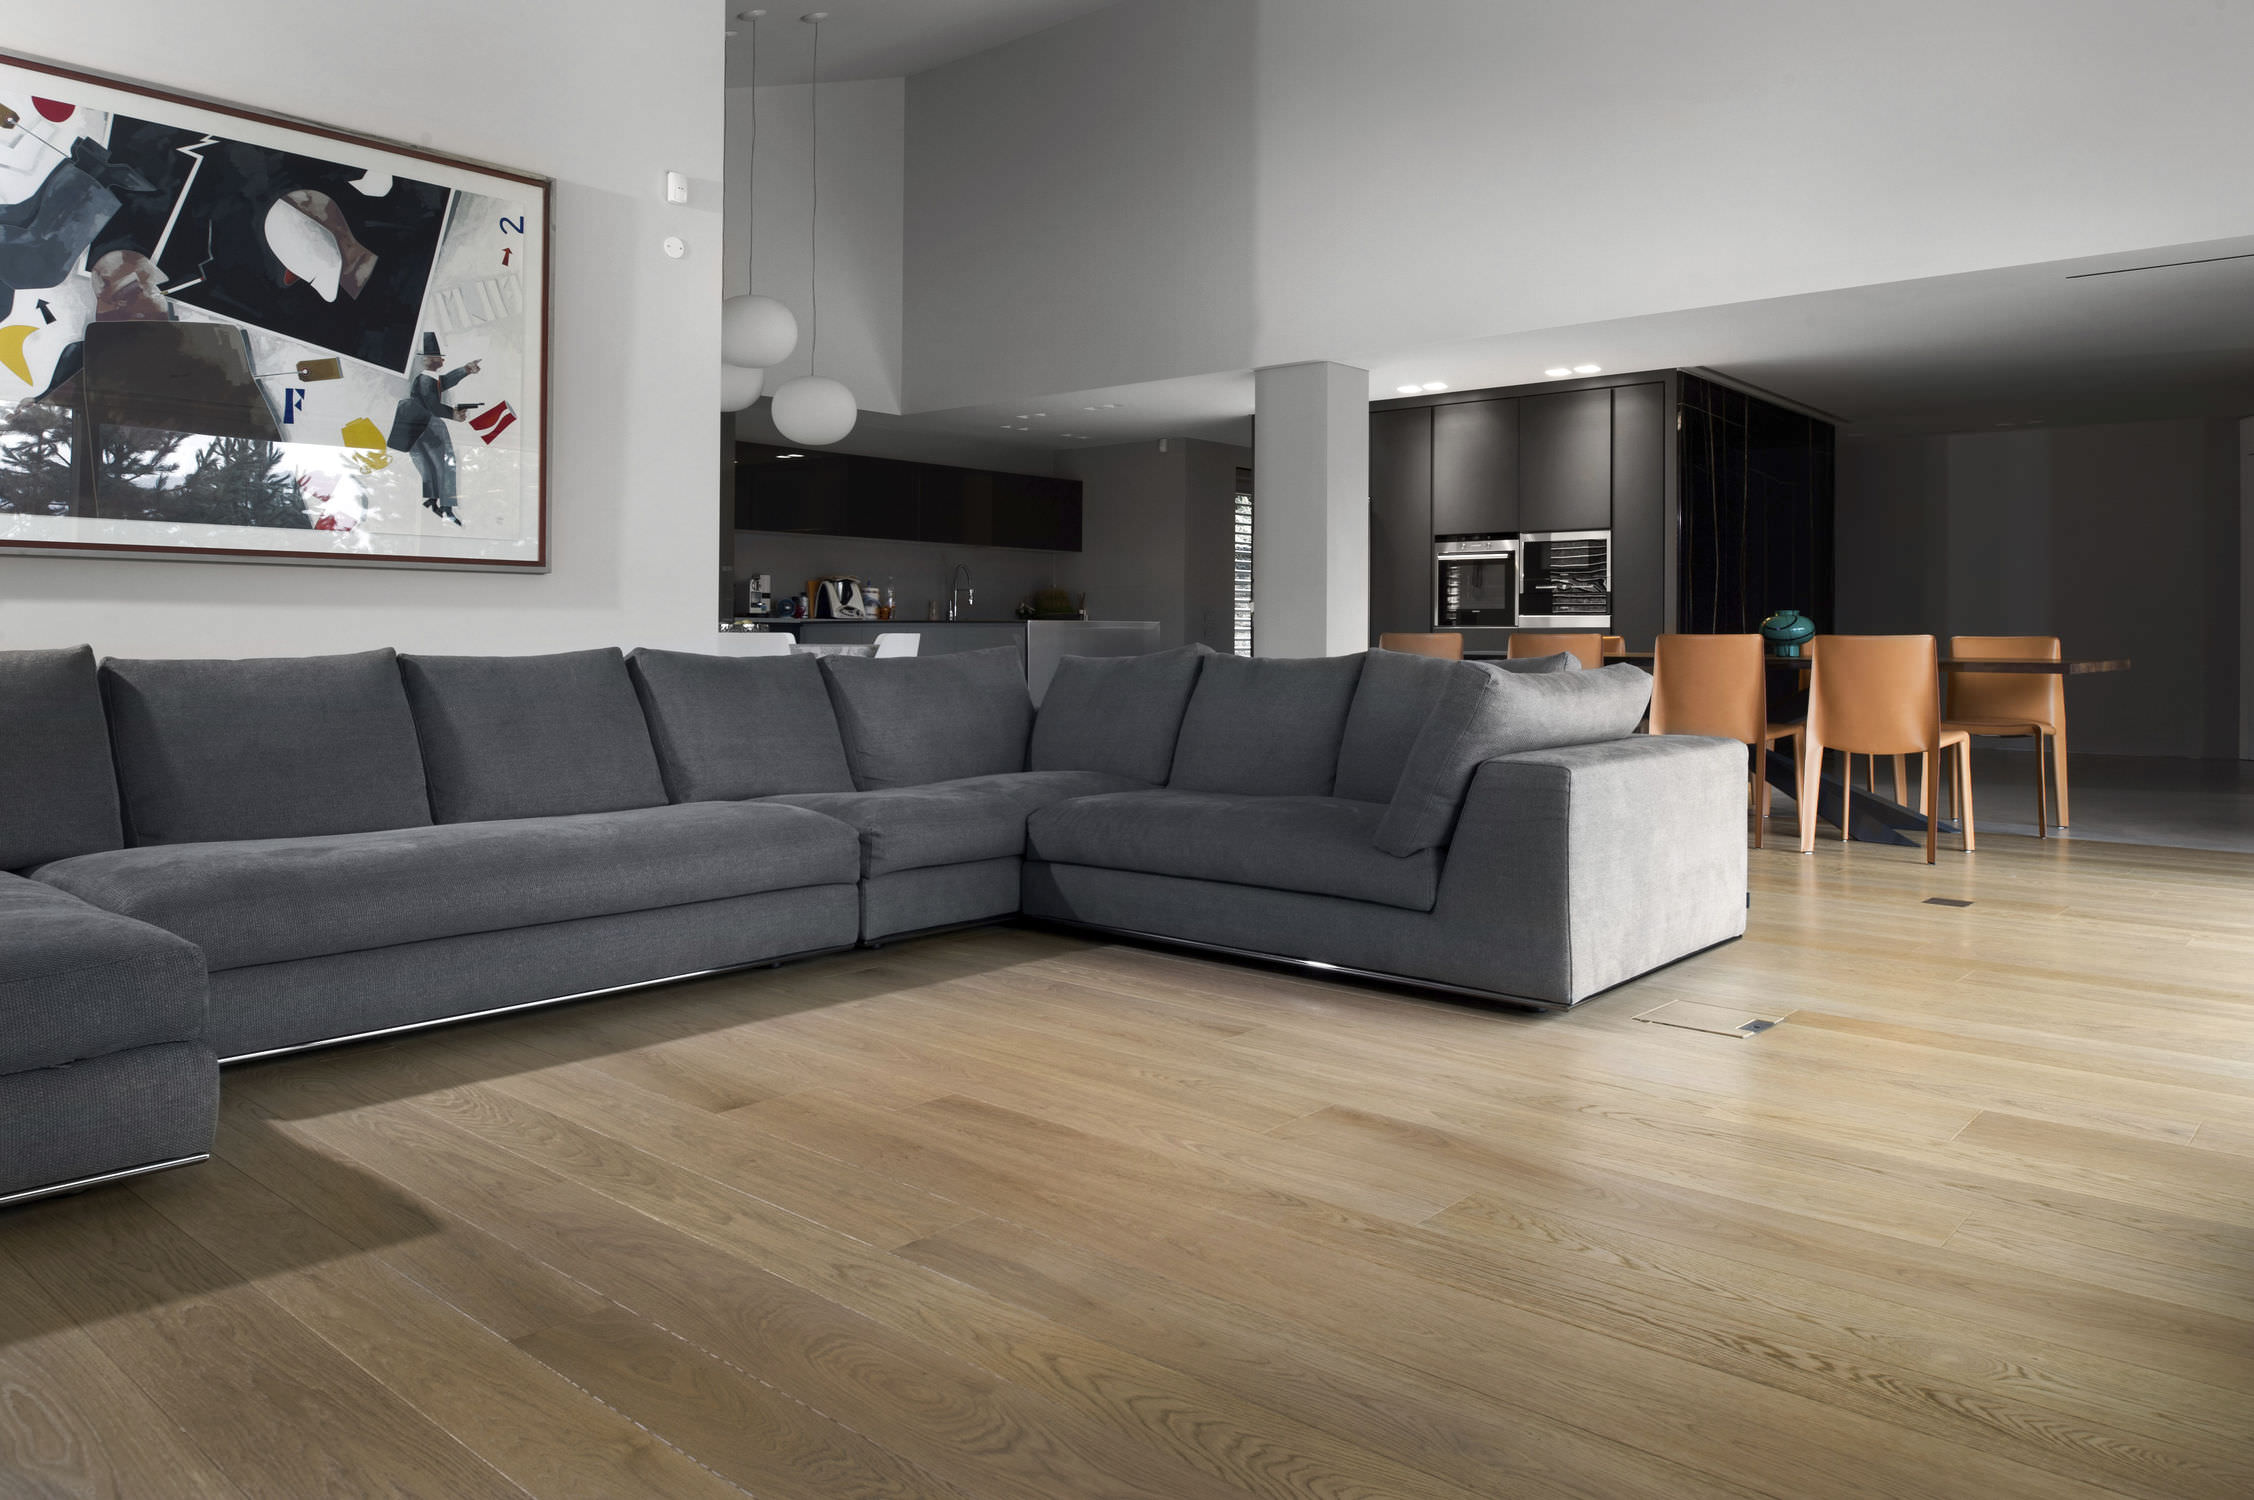 mp mur mobile oddicini parquet haut de gamme. Black Bedroom Furniture Sets. Home Design Ideas